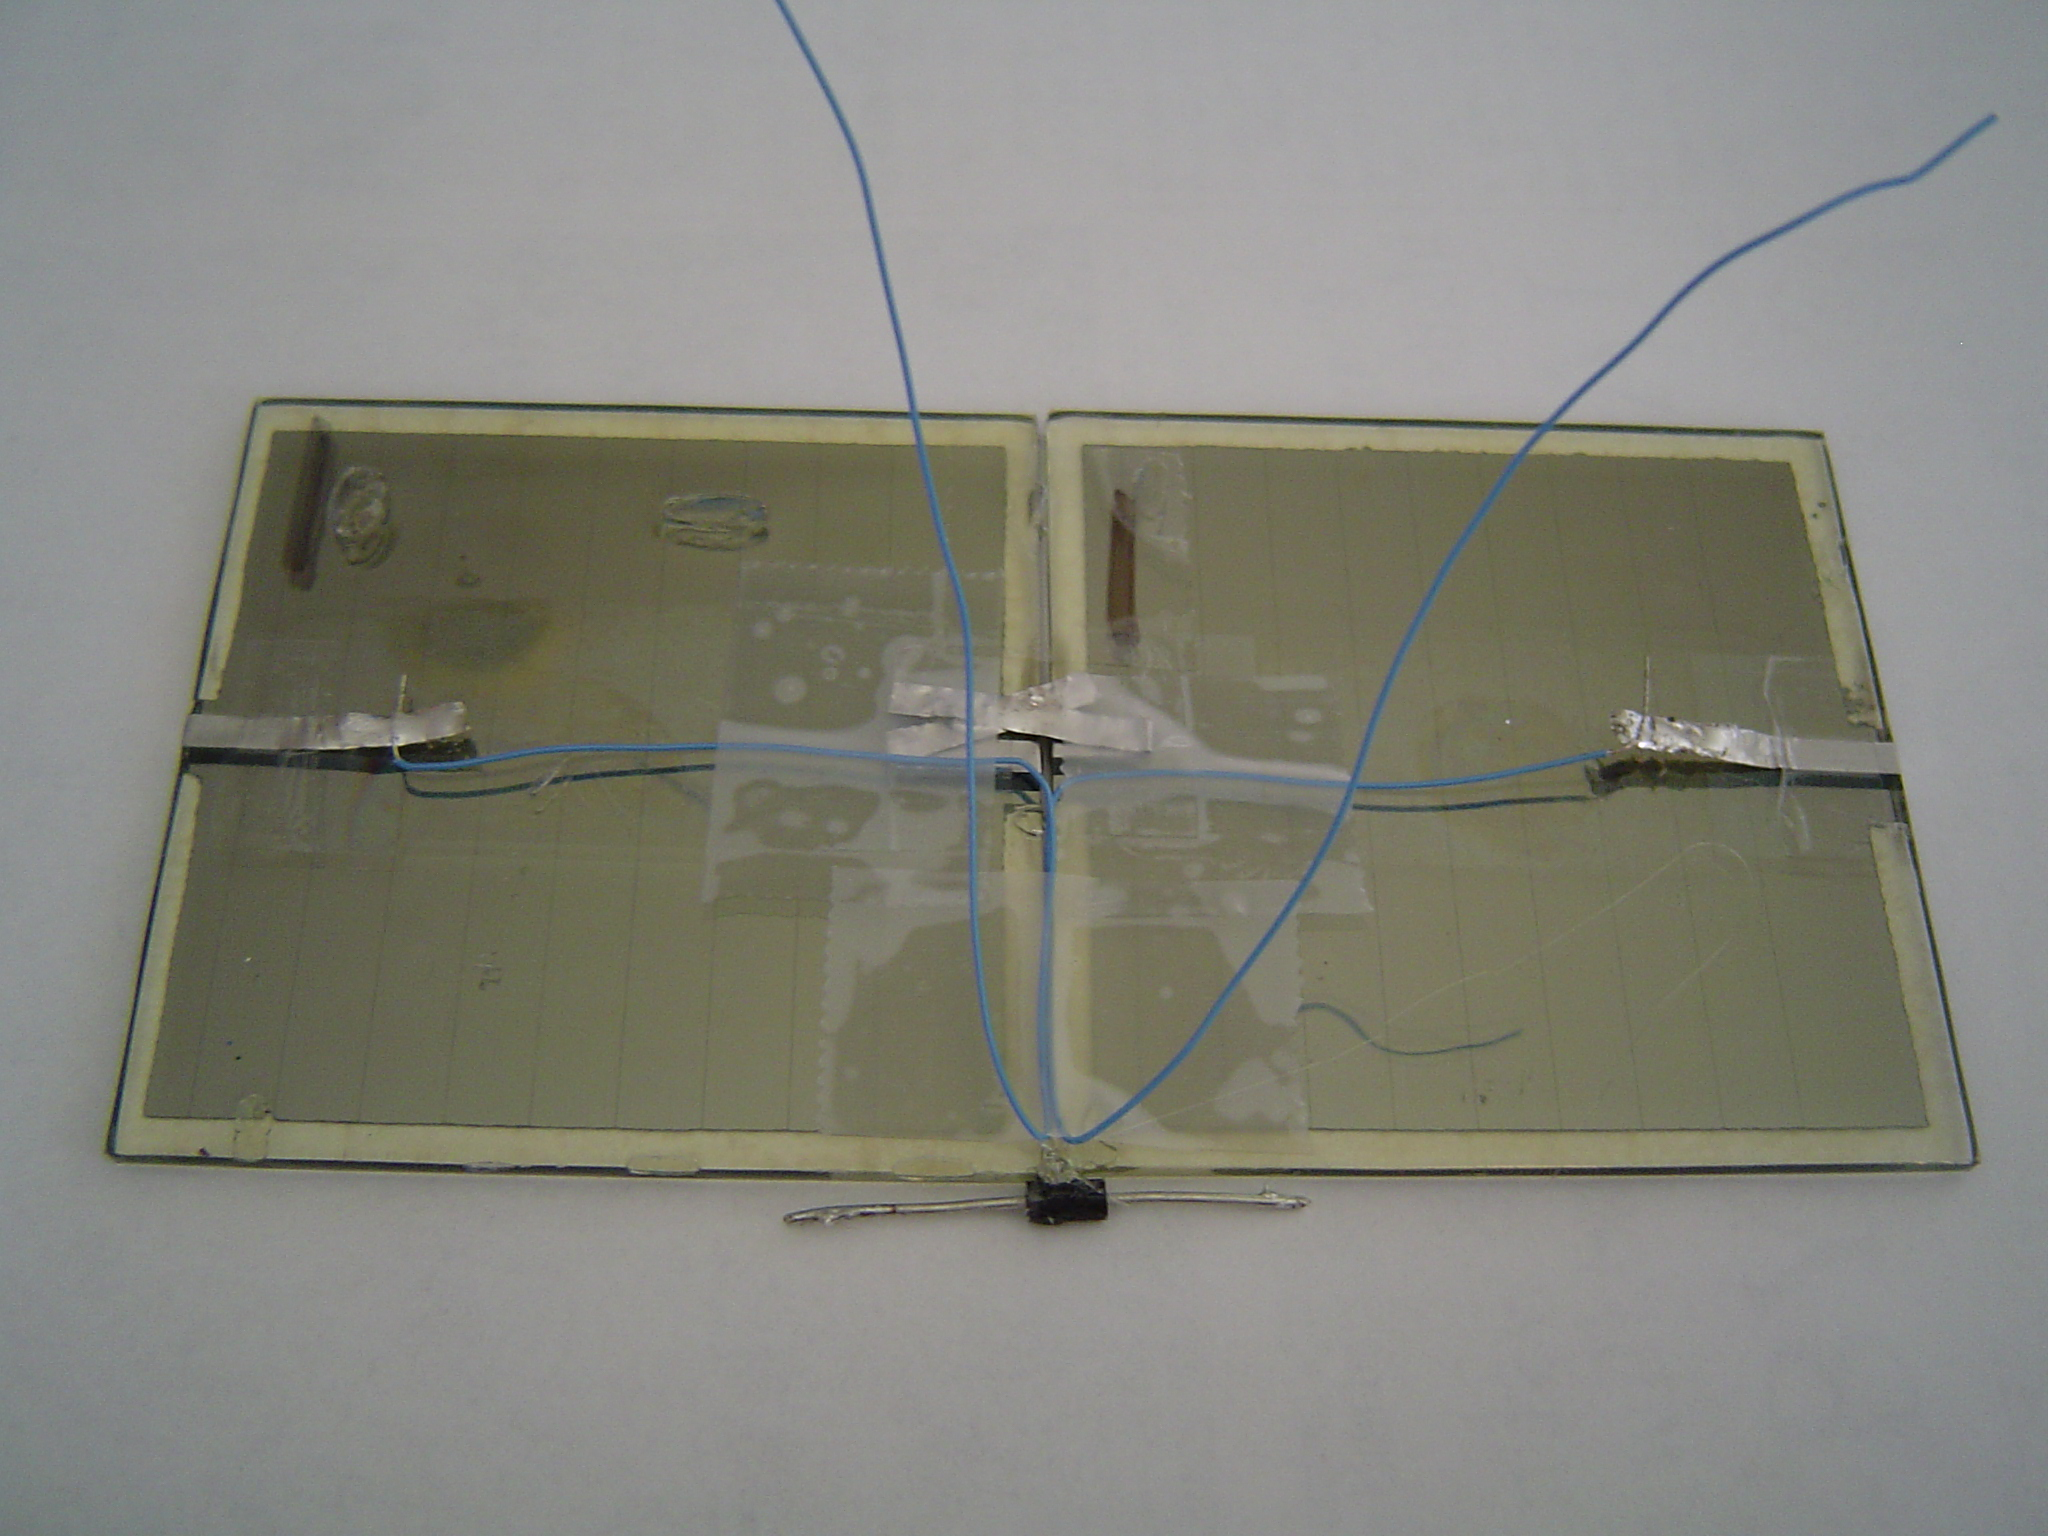 Picture of The Top Diode